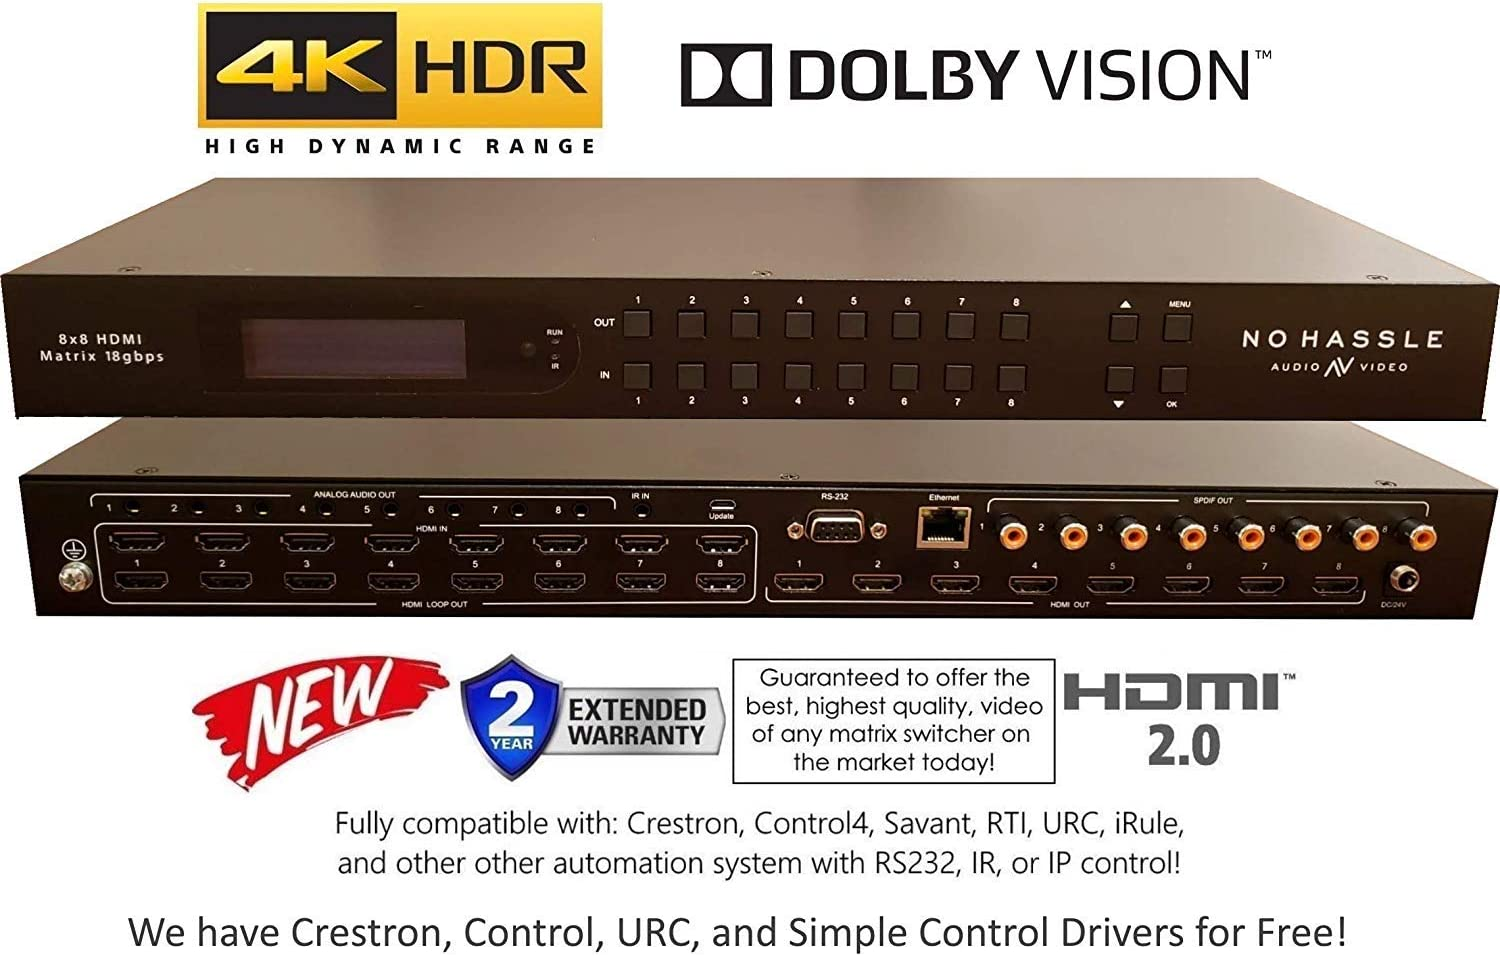 8x8 HDMI 4K HDR Matrix Switcher 18GBPS Ultra YUV 4:4:4 HDCP2.2 60Hz HDMI 2.0B Dolby Atmos HDTV Routing SELECTOR SPDIF Audio CONTROL4 Savant Home Automation Switch IP RS232